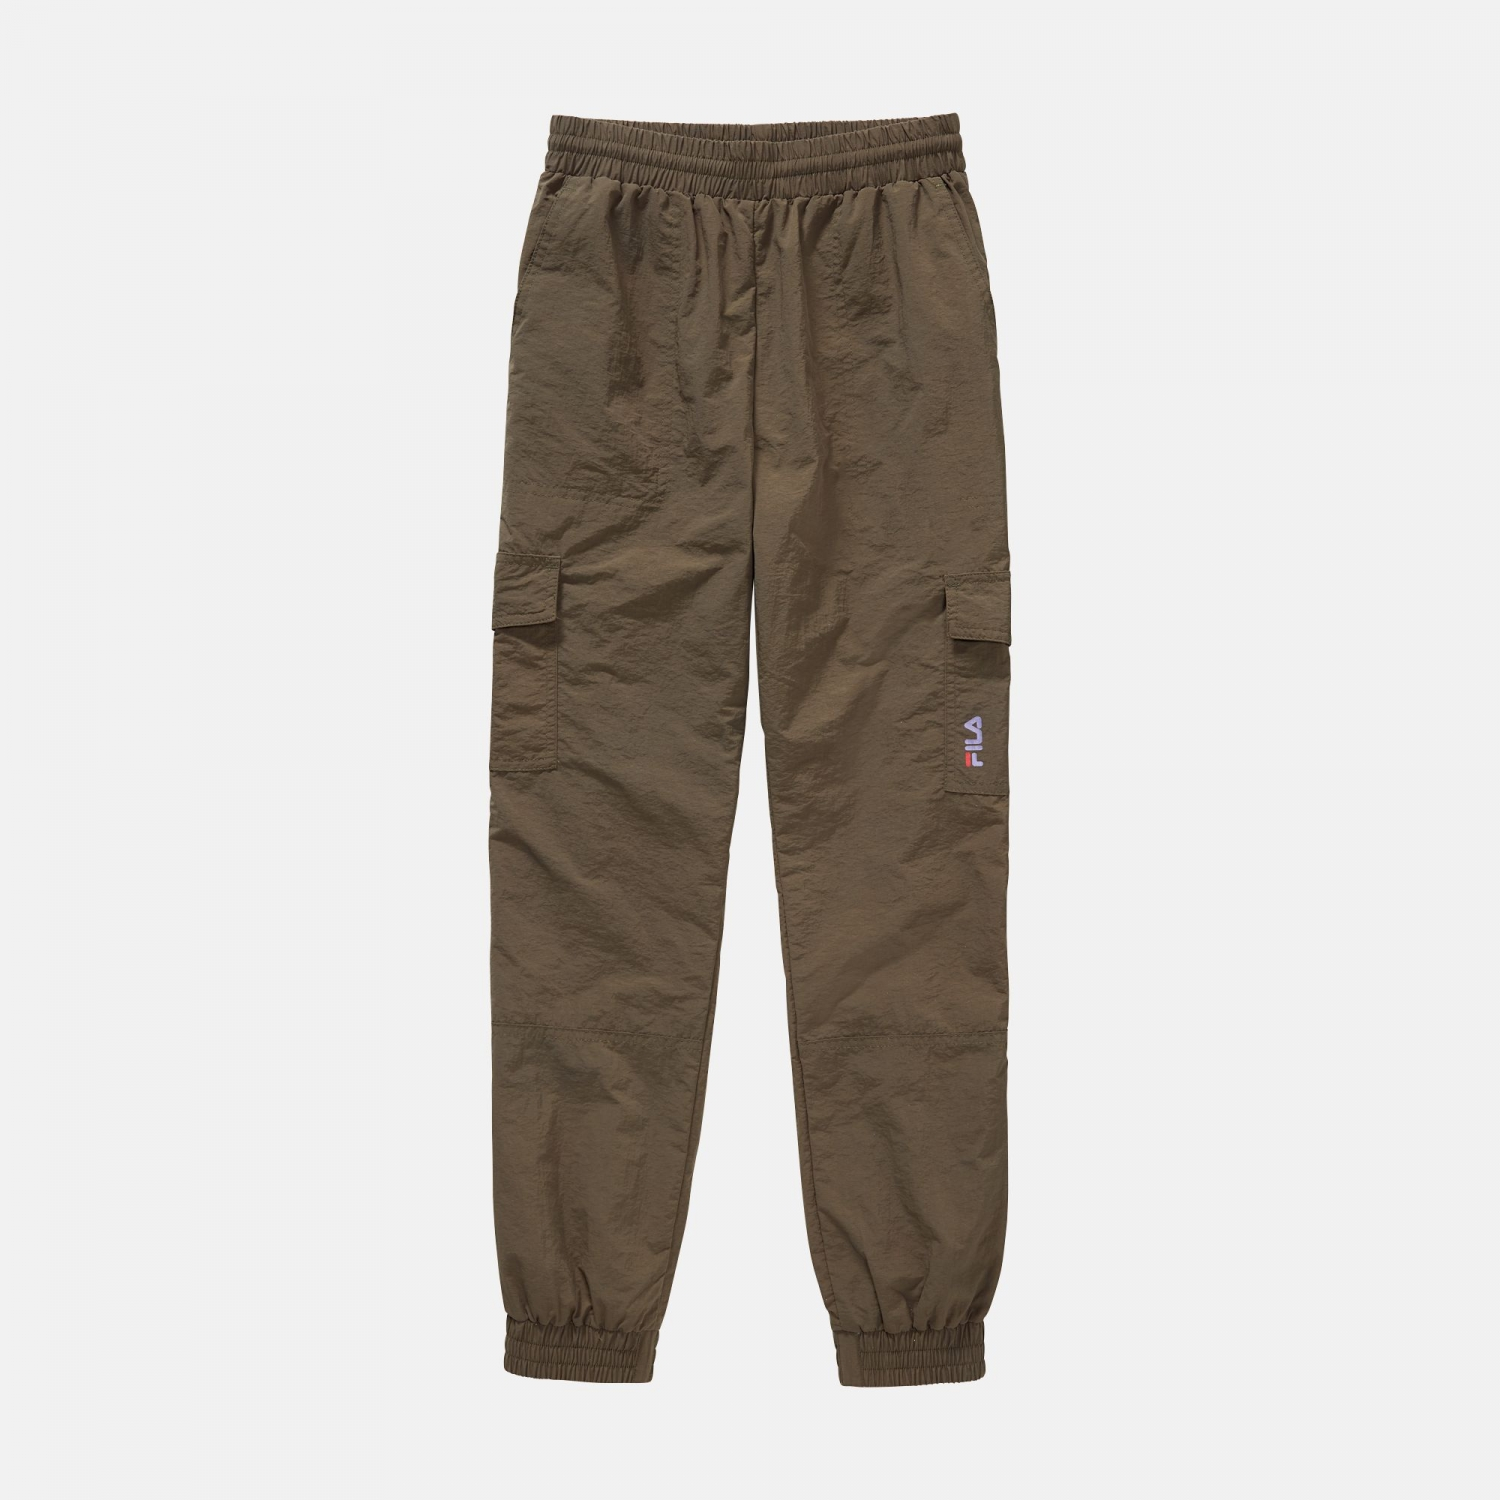 Fila Teens Iva Cargo Pants grape-leaf Bild 1